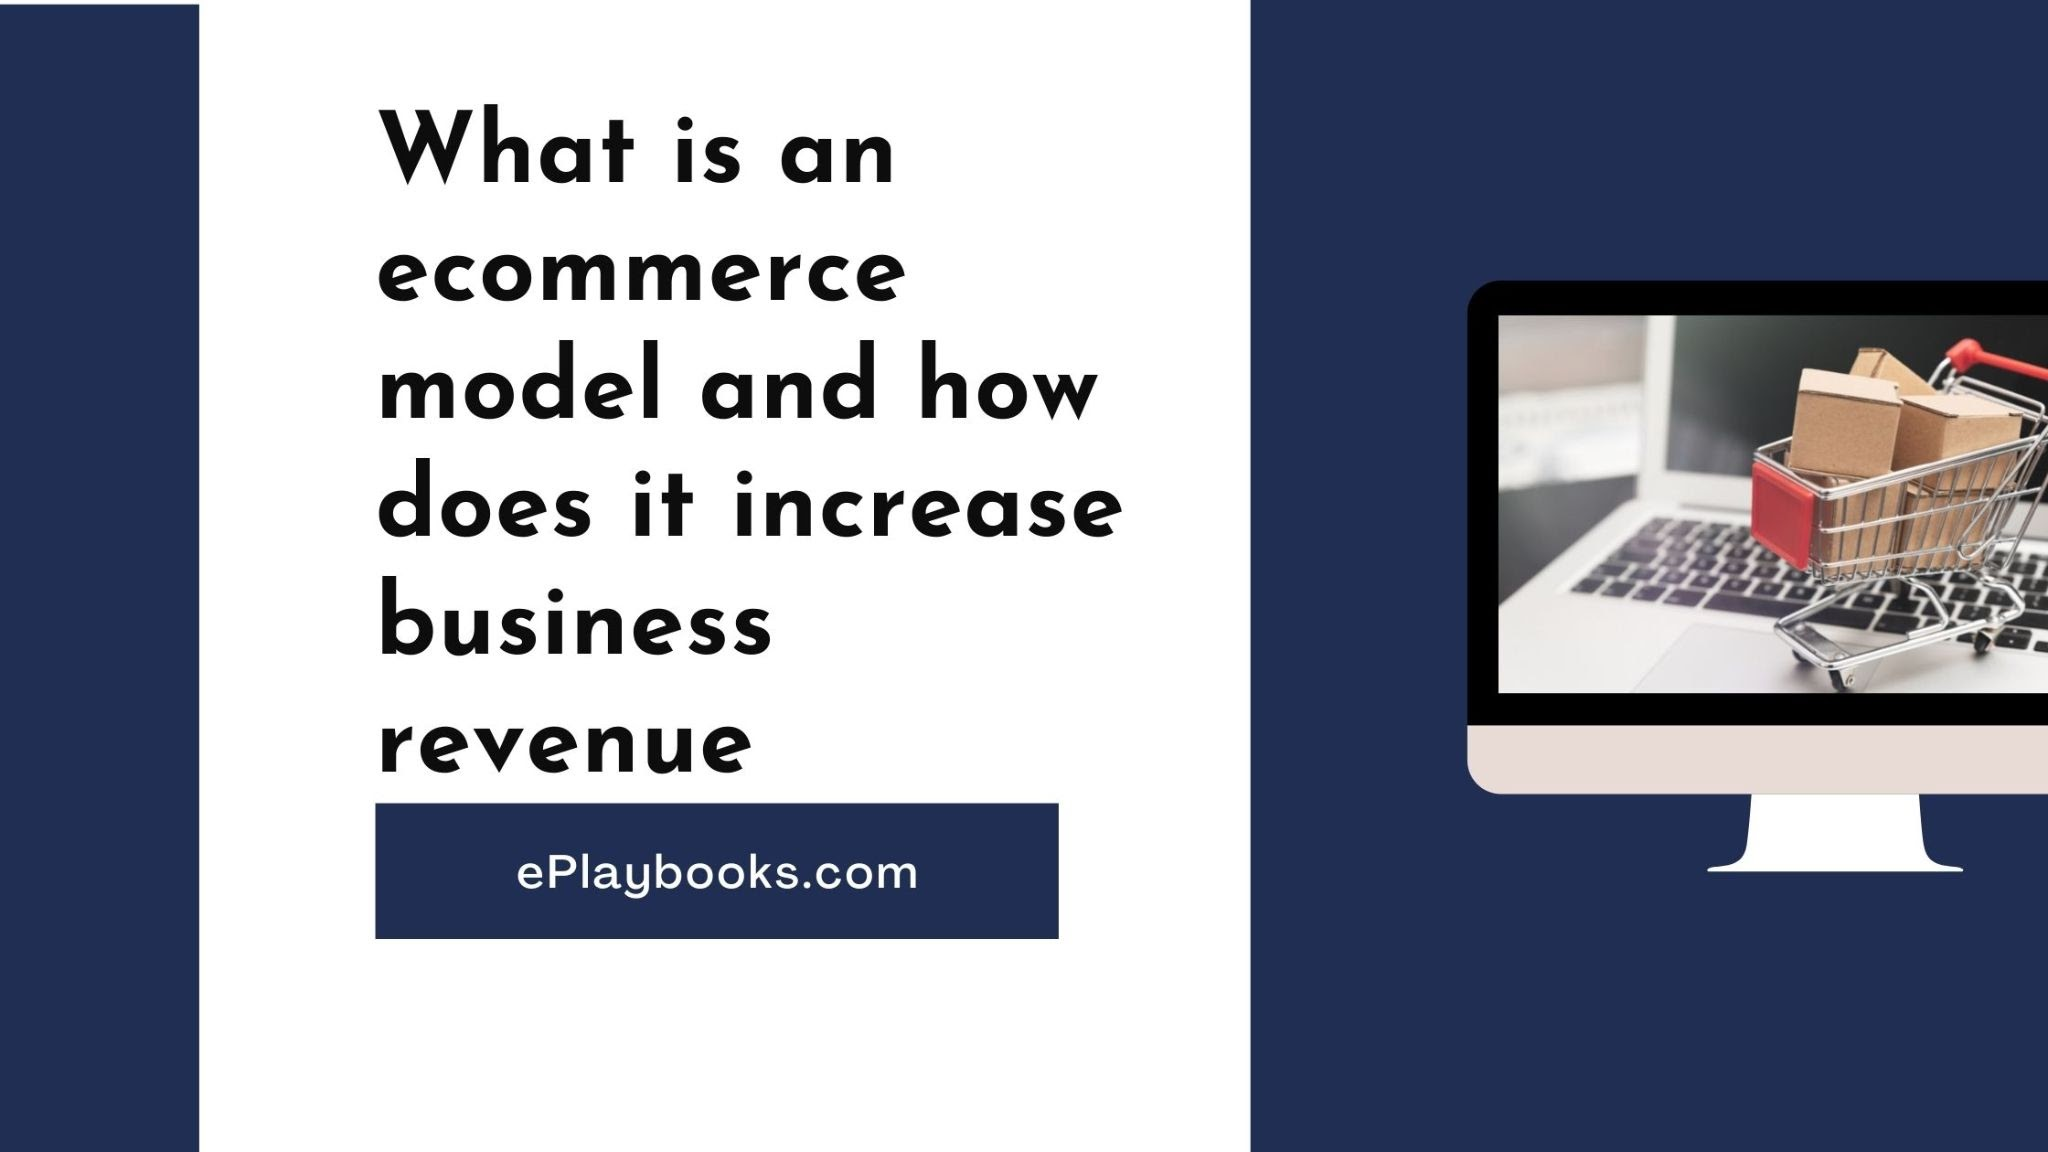 What is an ecommerce model and how does it increase business revenue